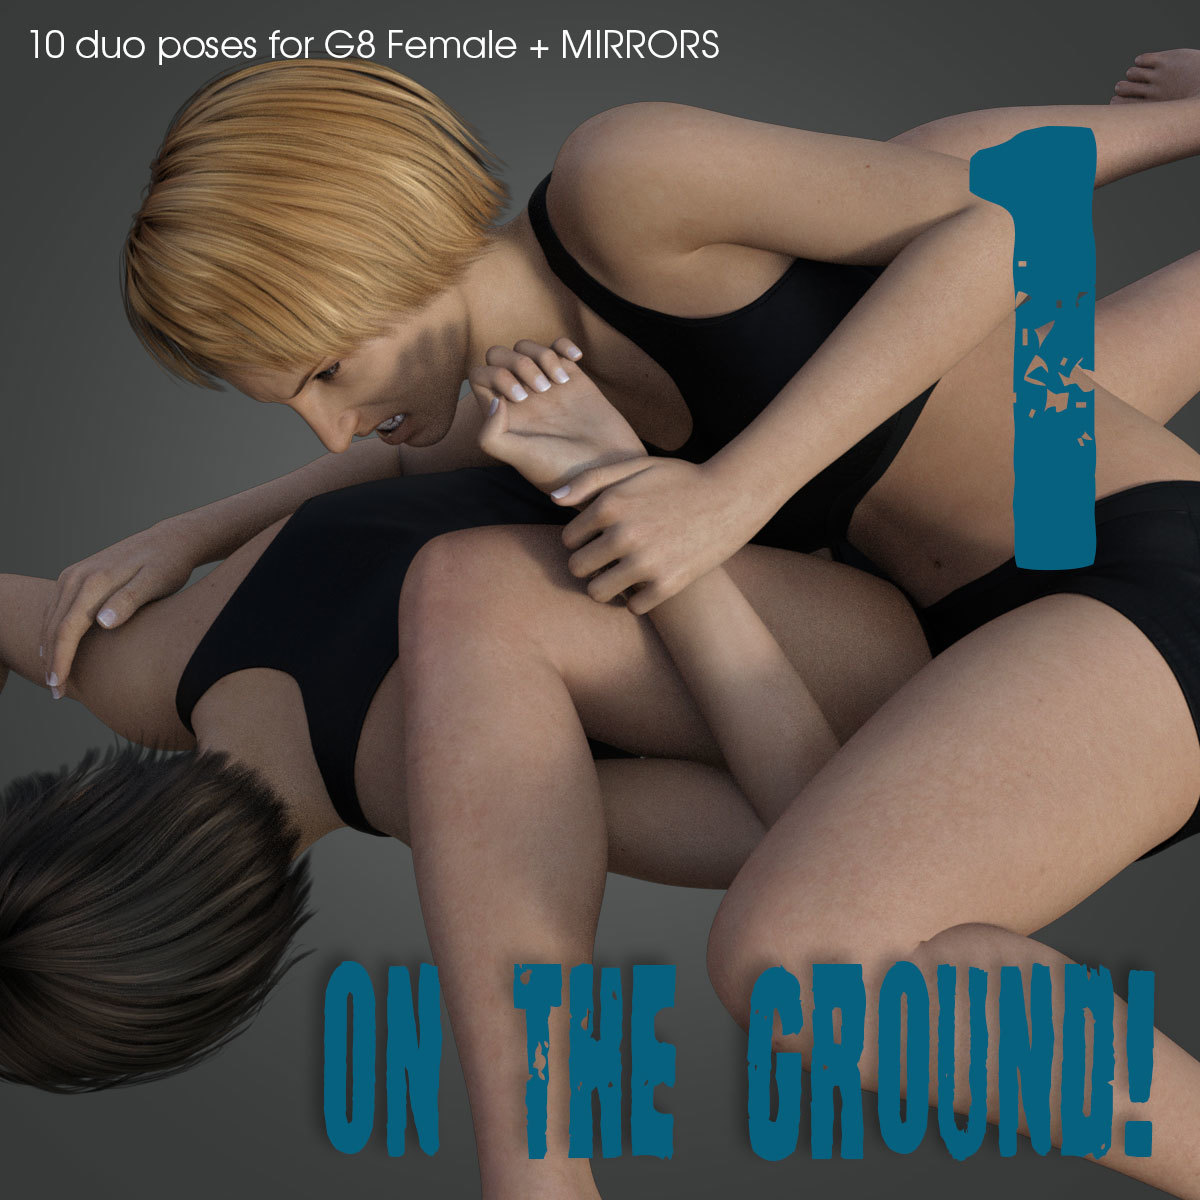 ON THE GROUND! vol.1 for Genesis 8 Female